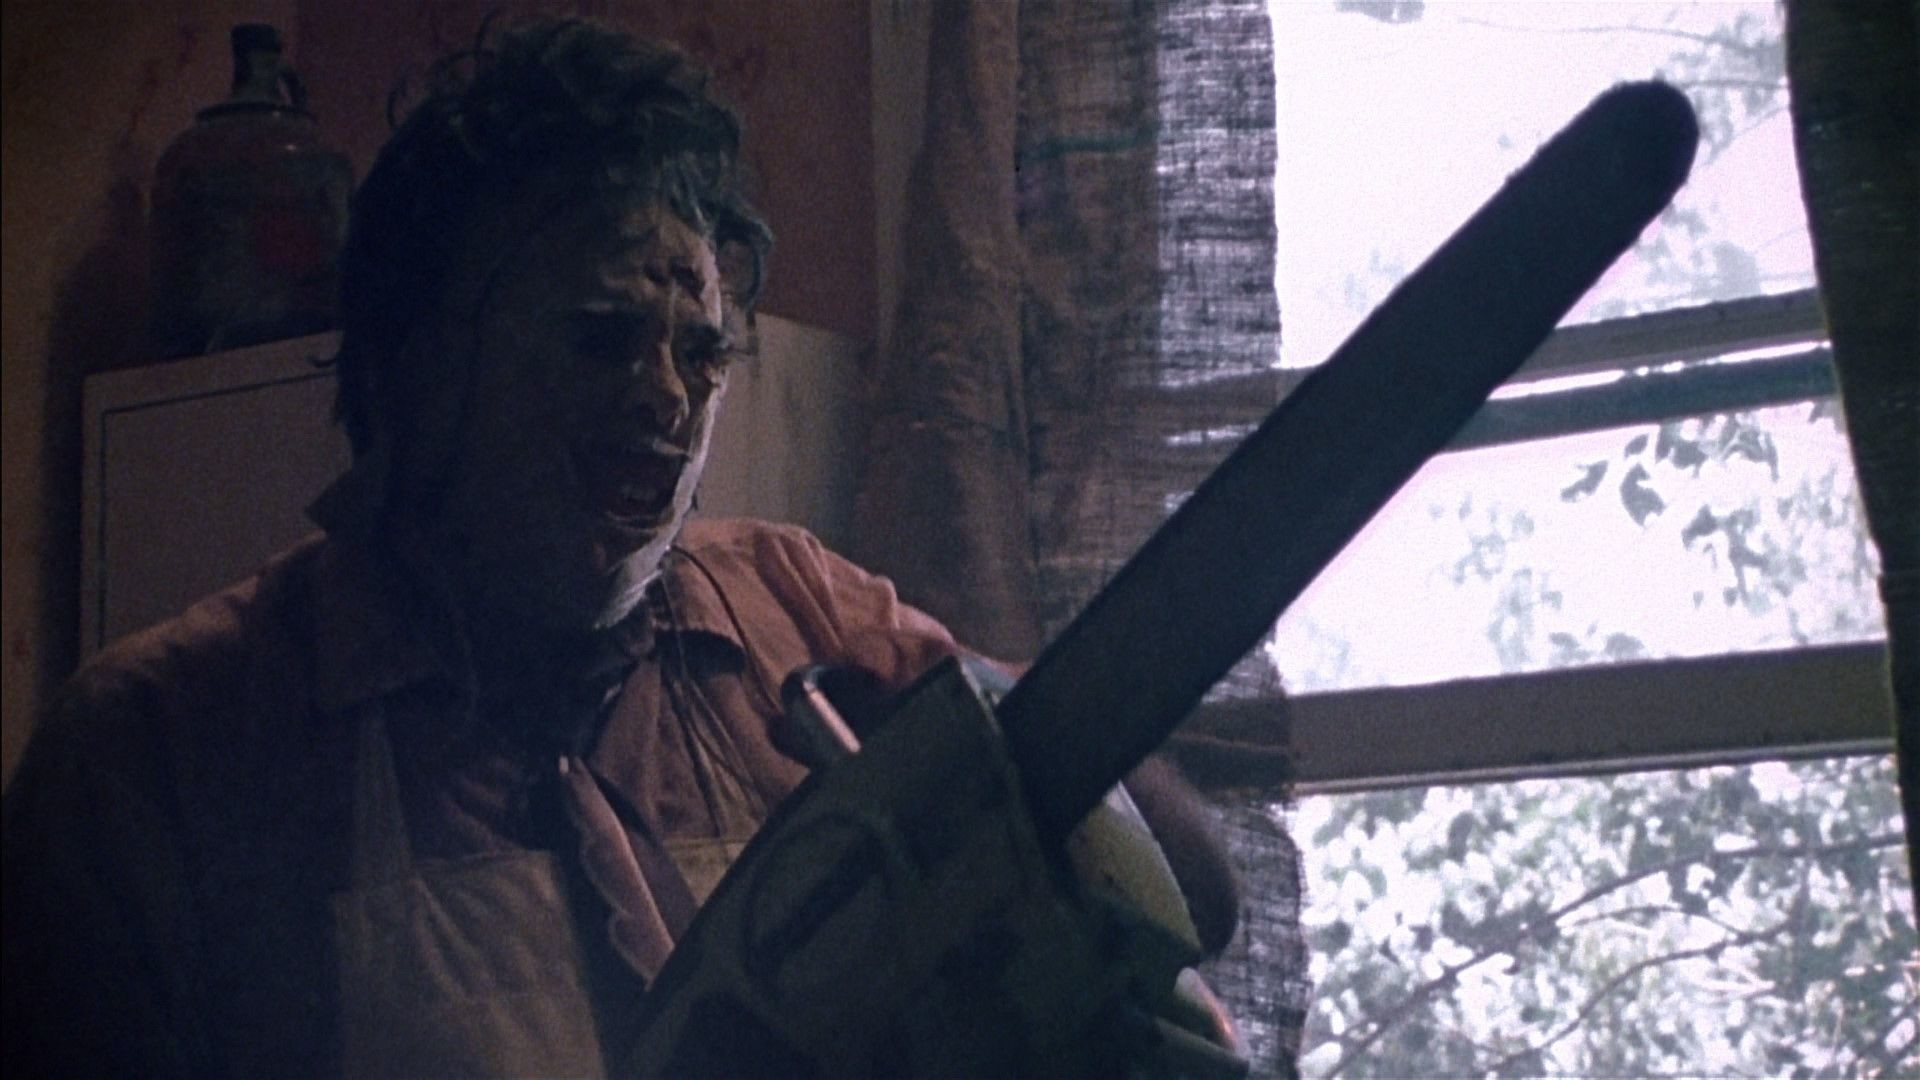 Res: 1920x1080, The Texas Chainsaw Massacre | Events | Coral Gables Art Cinema